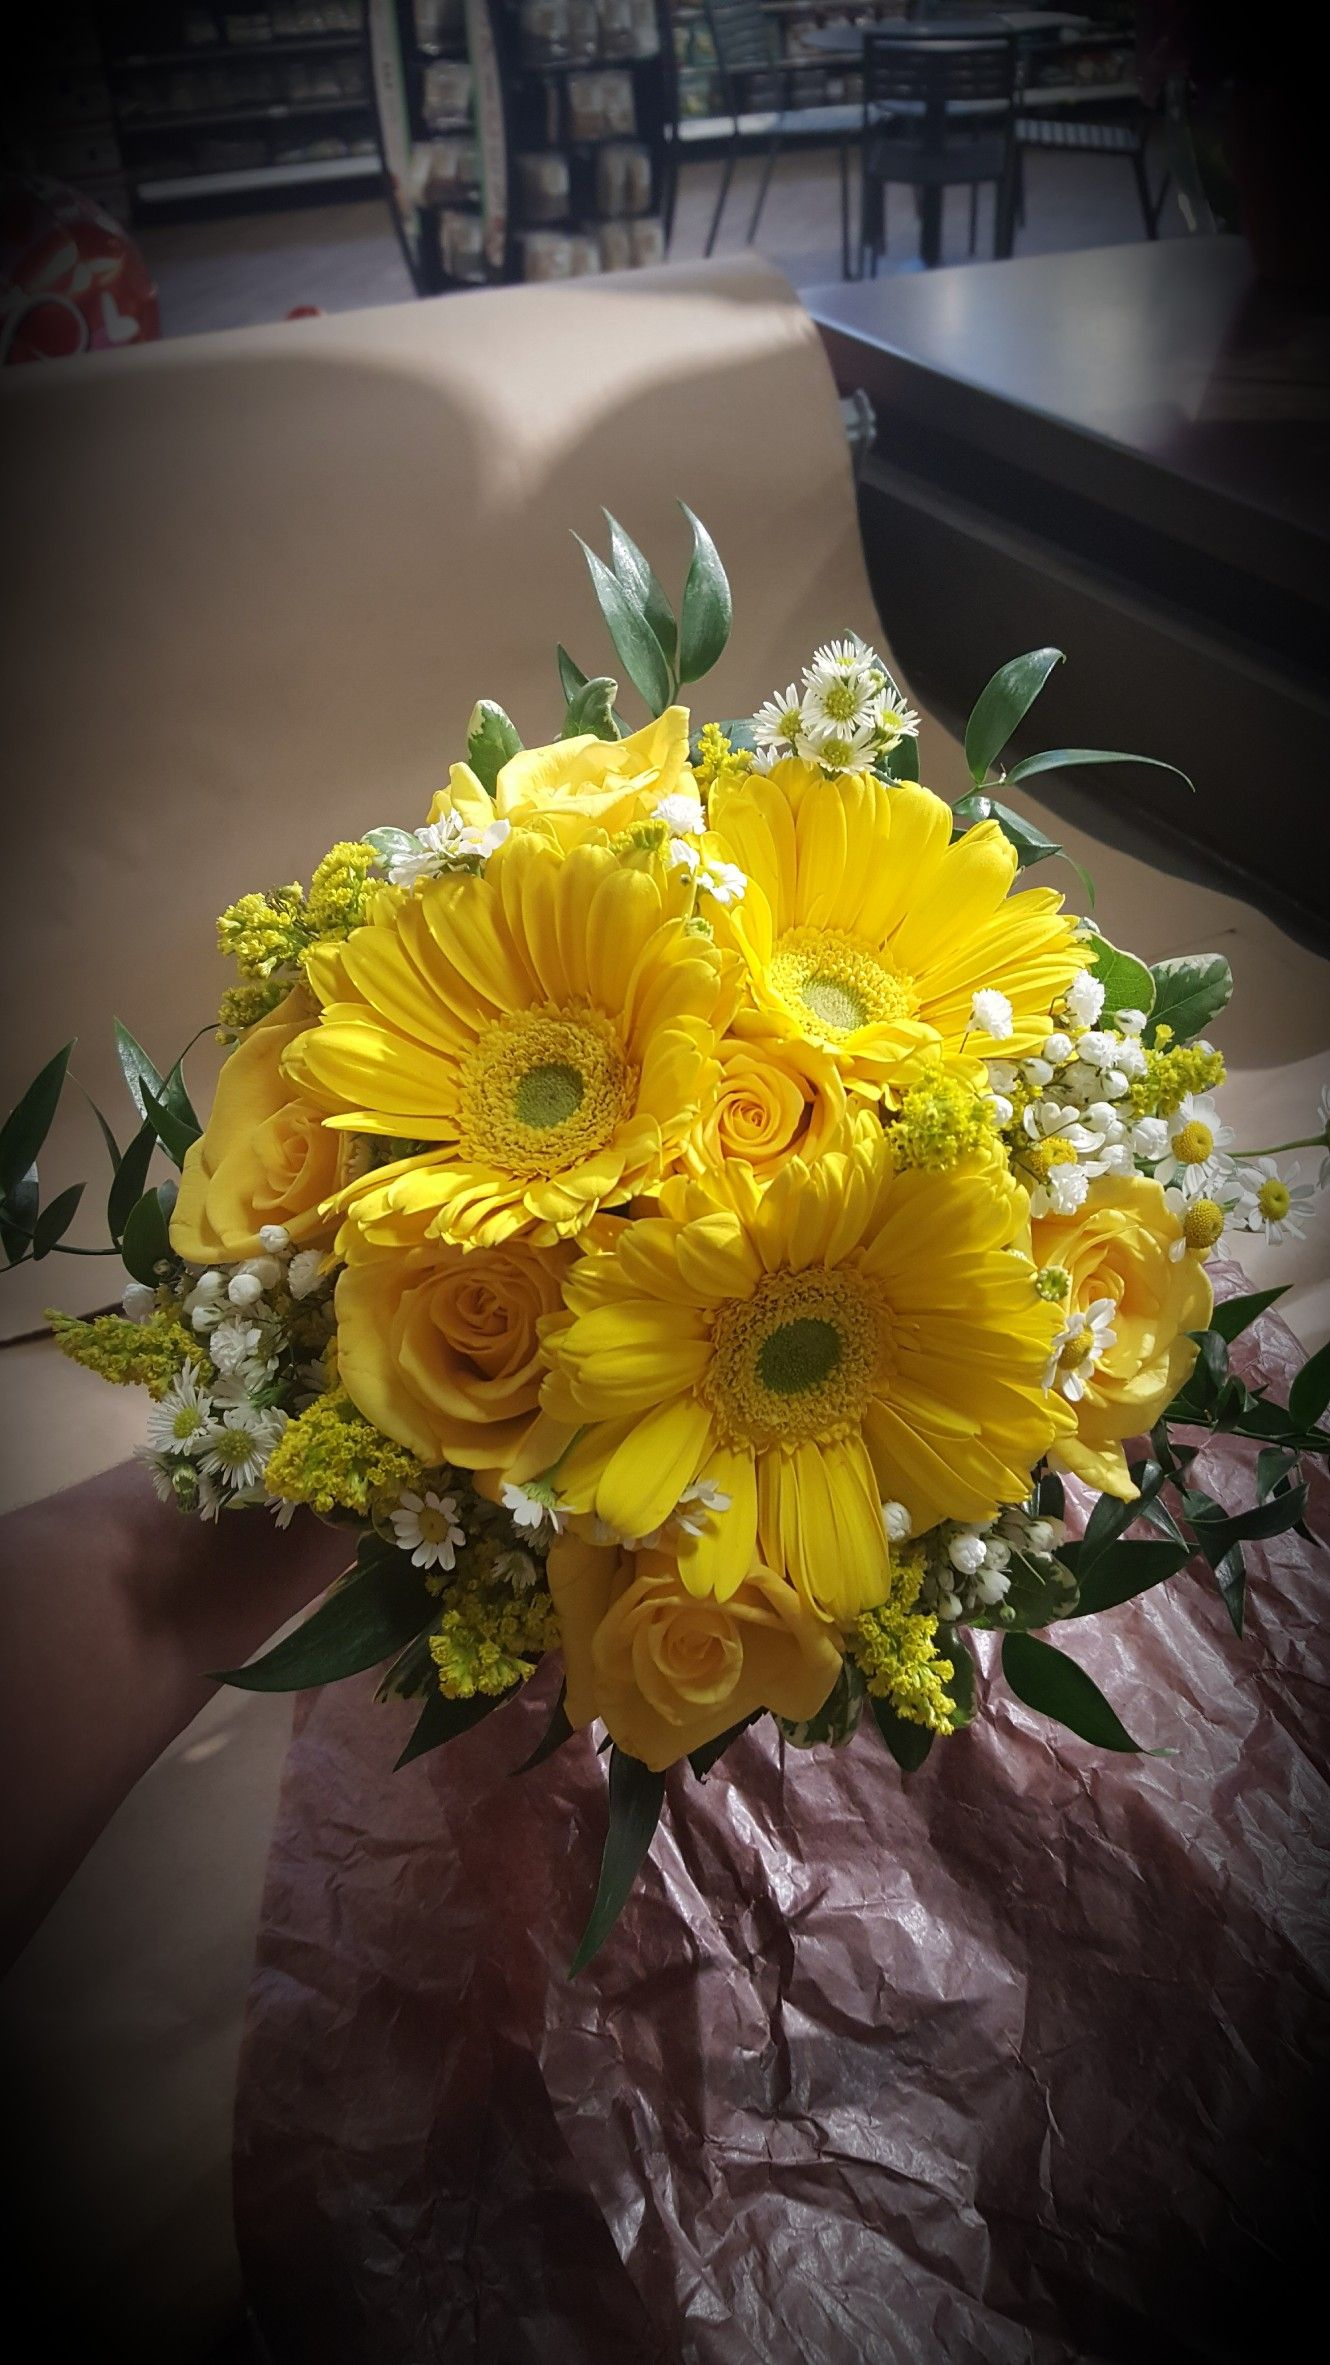 Gerbera daisy yellow rose monte chamomile and solidago bridal gerbera daisy yellow rose monte chamomile and solidago bridal bouquet izmirmasajfo